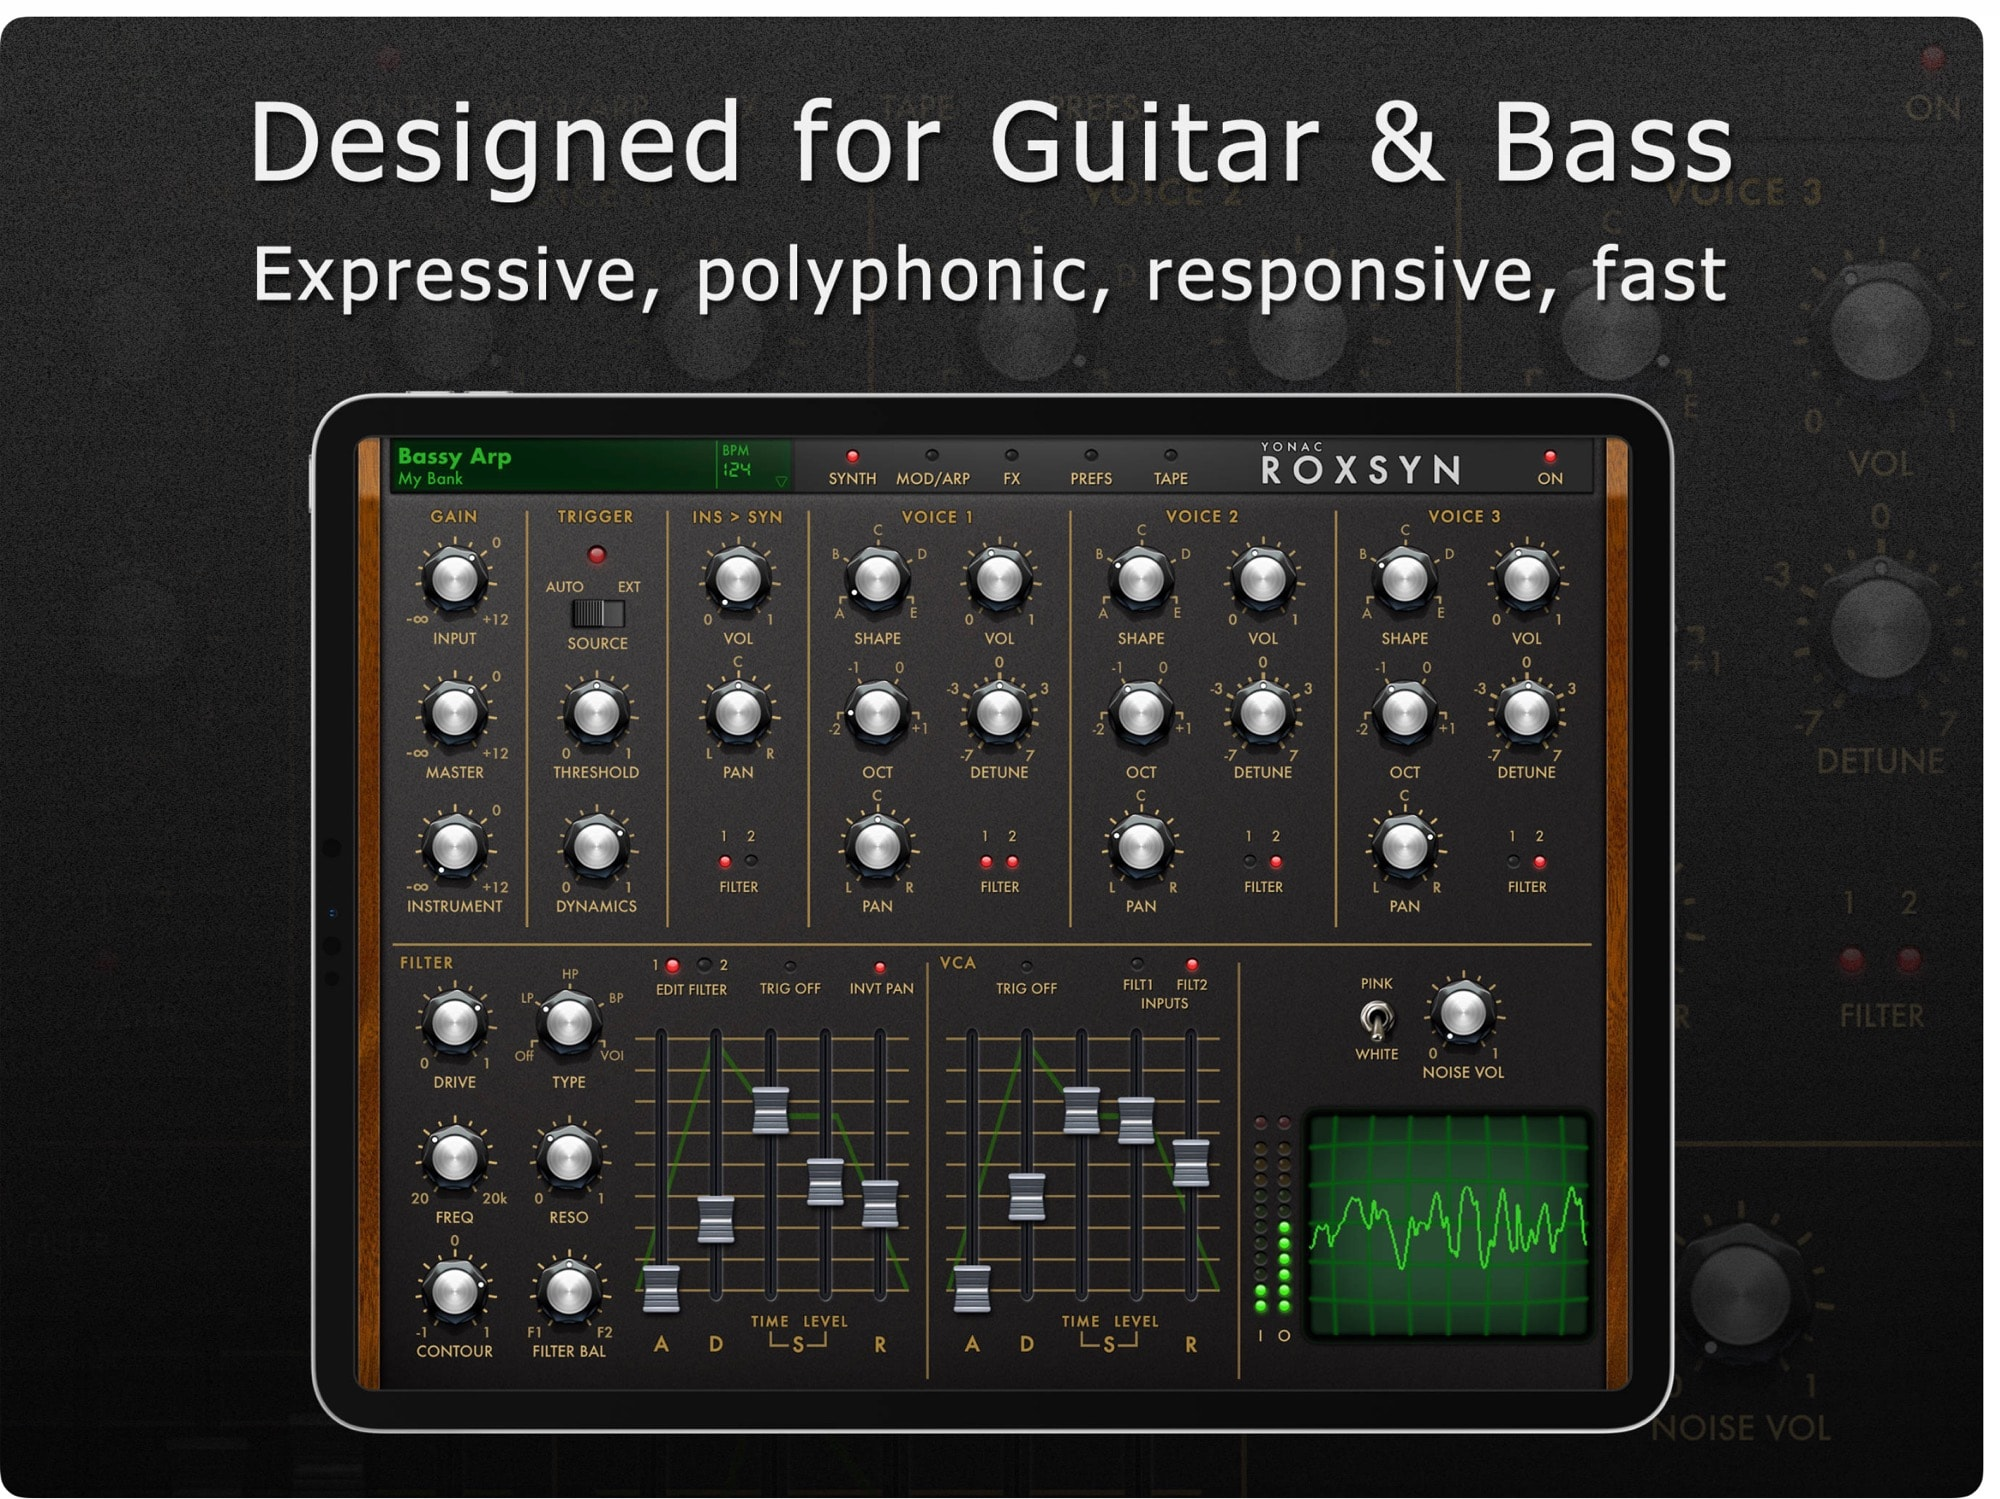 Roxsyn app turns your electric guitar into a synthesizer | Cult of Mac